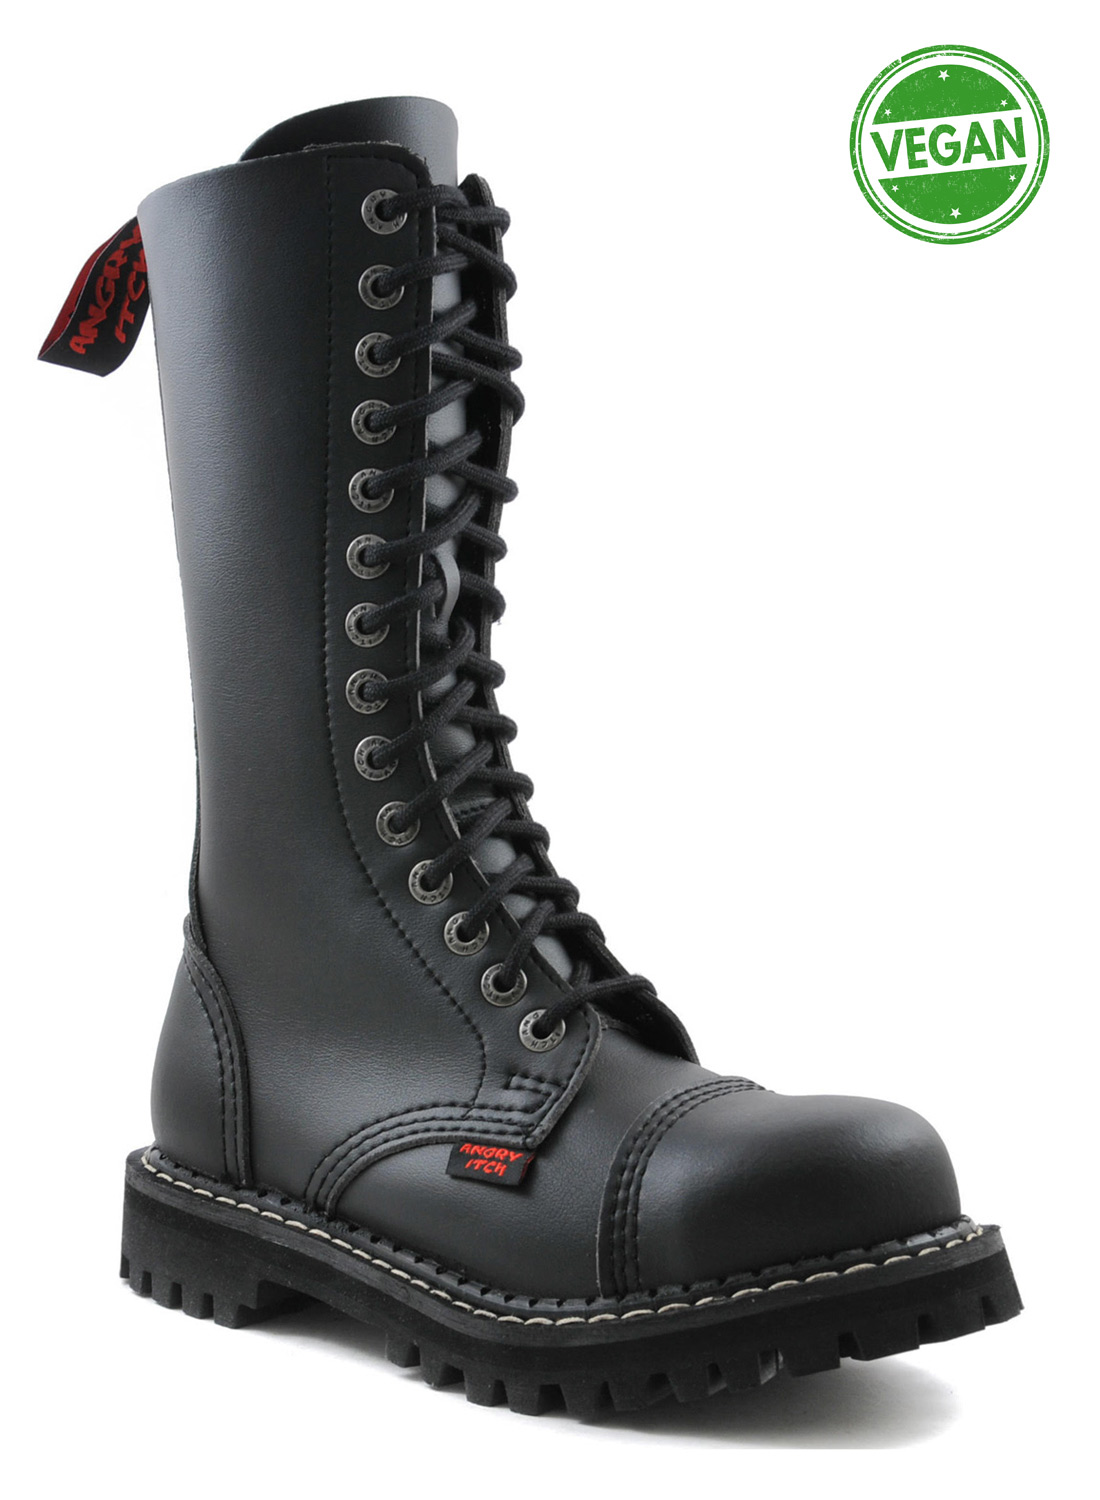 Angry Itch 14 Eye Steel Toe Boots Vegan Leather